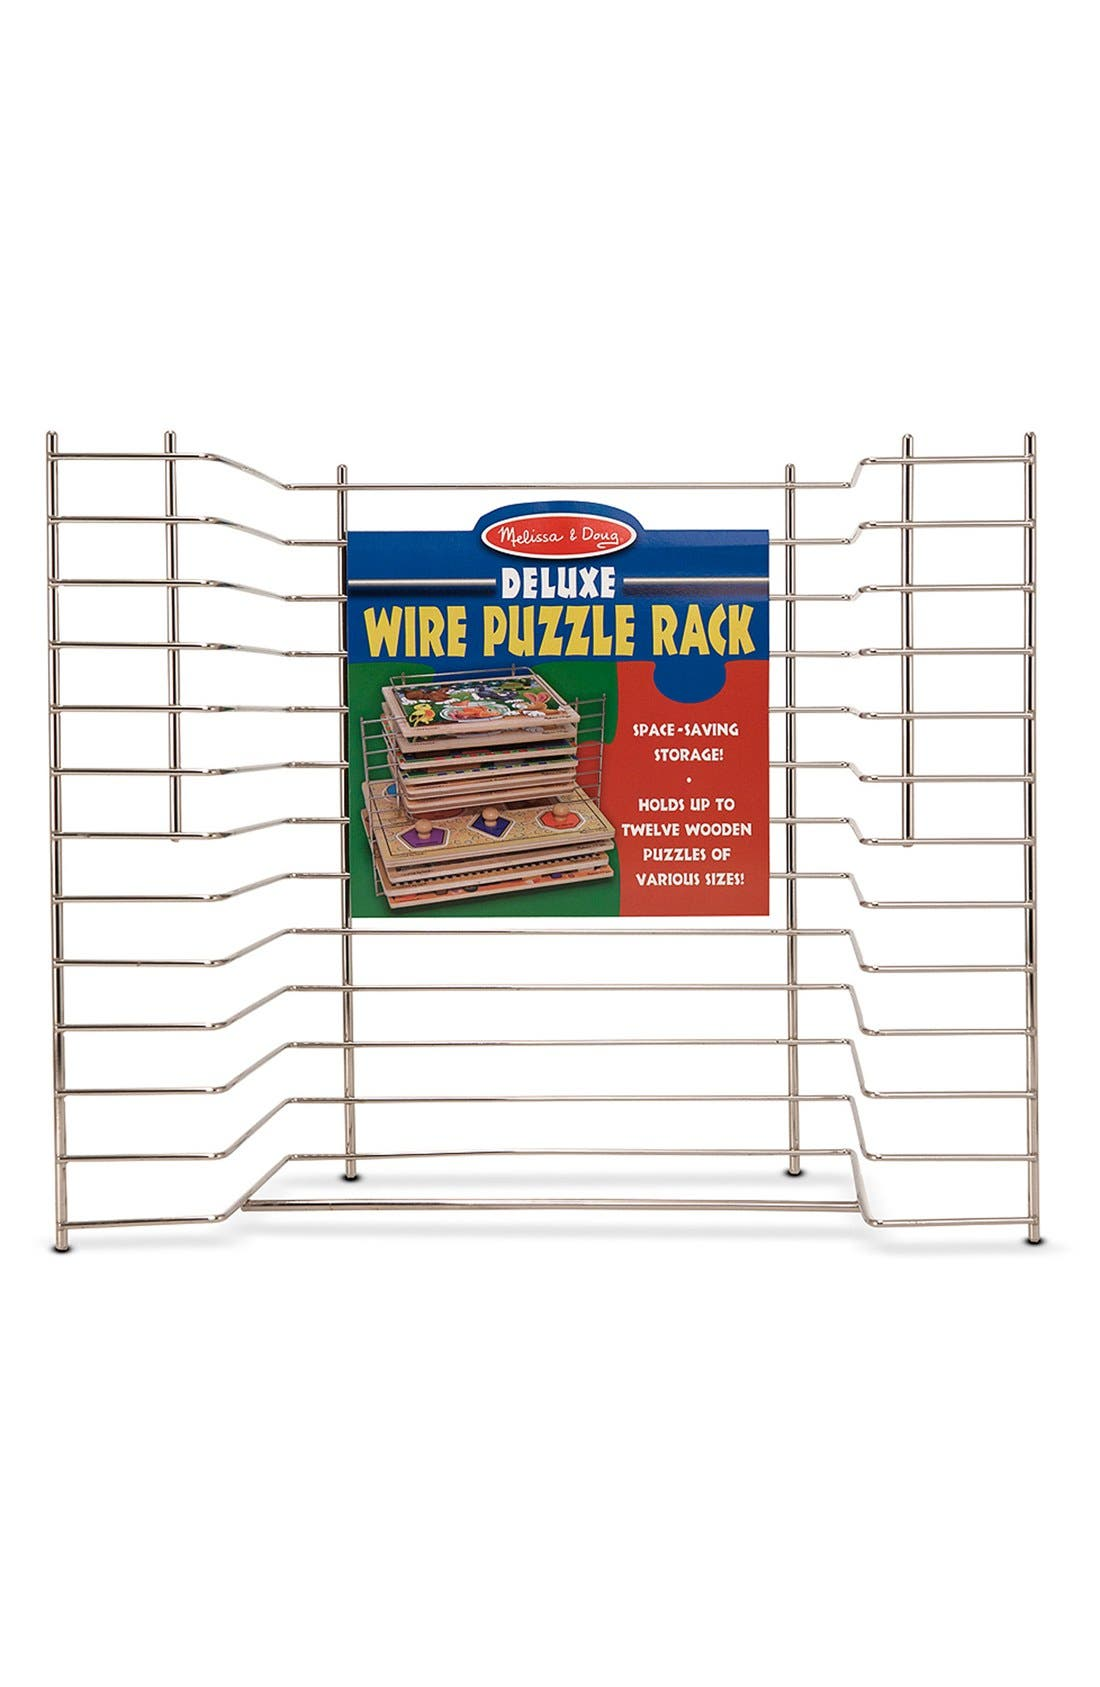 'Deluxe' Wire Puzzle Rack,                             Main thumbnail 1, color,                             040